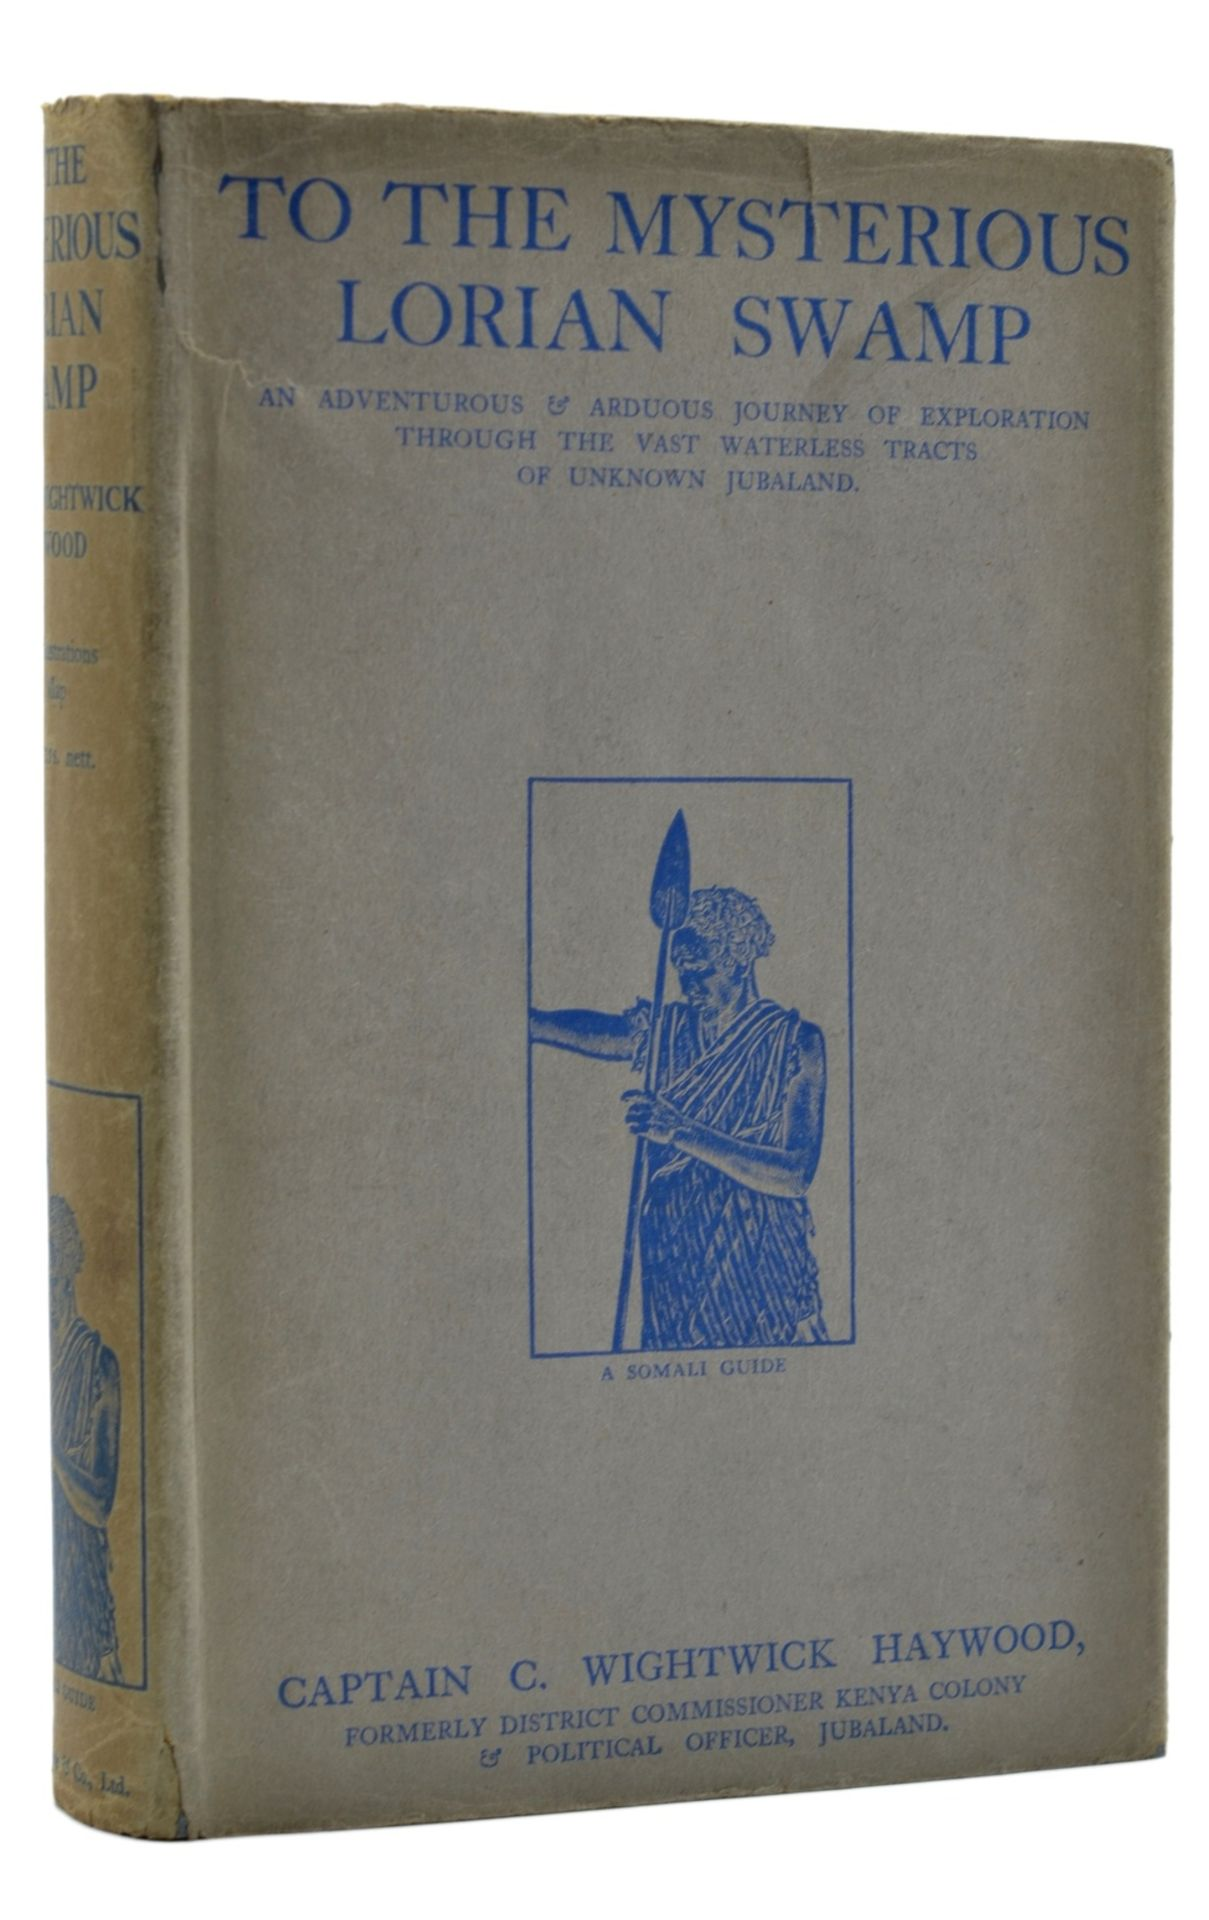 Africa.- Haywood (Capt. C. Wightwick) To the Mysterious Lorian Swamp, first edition, 1917.